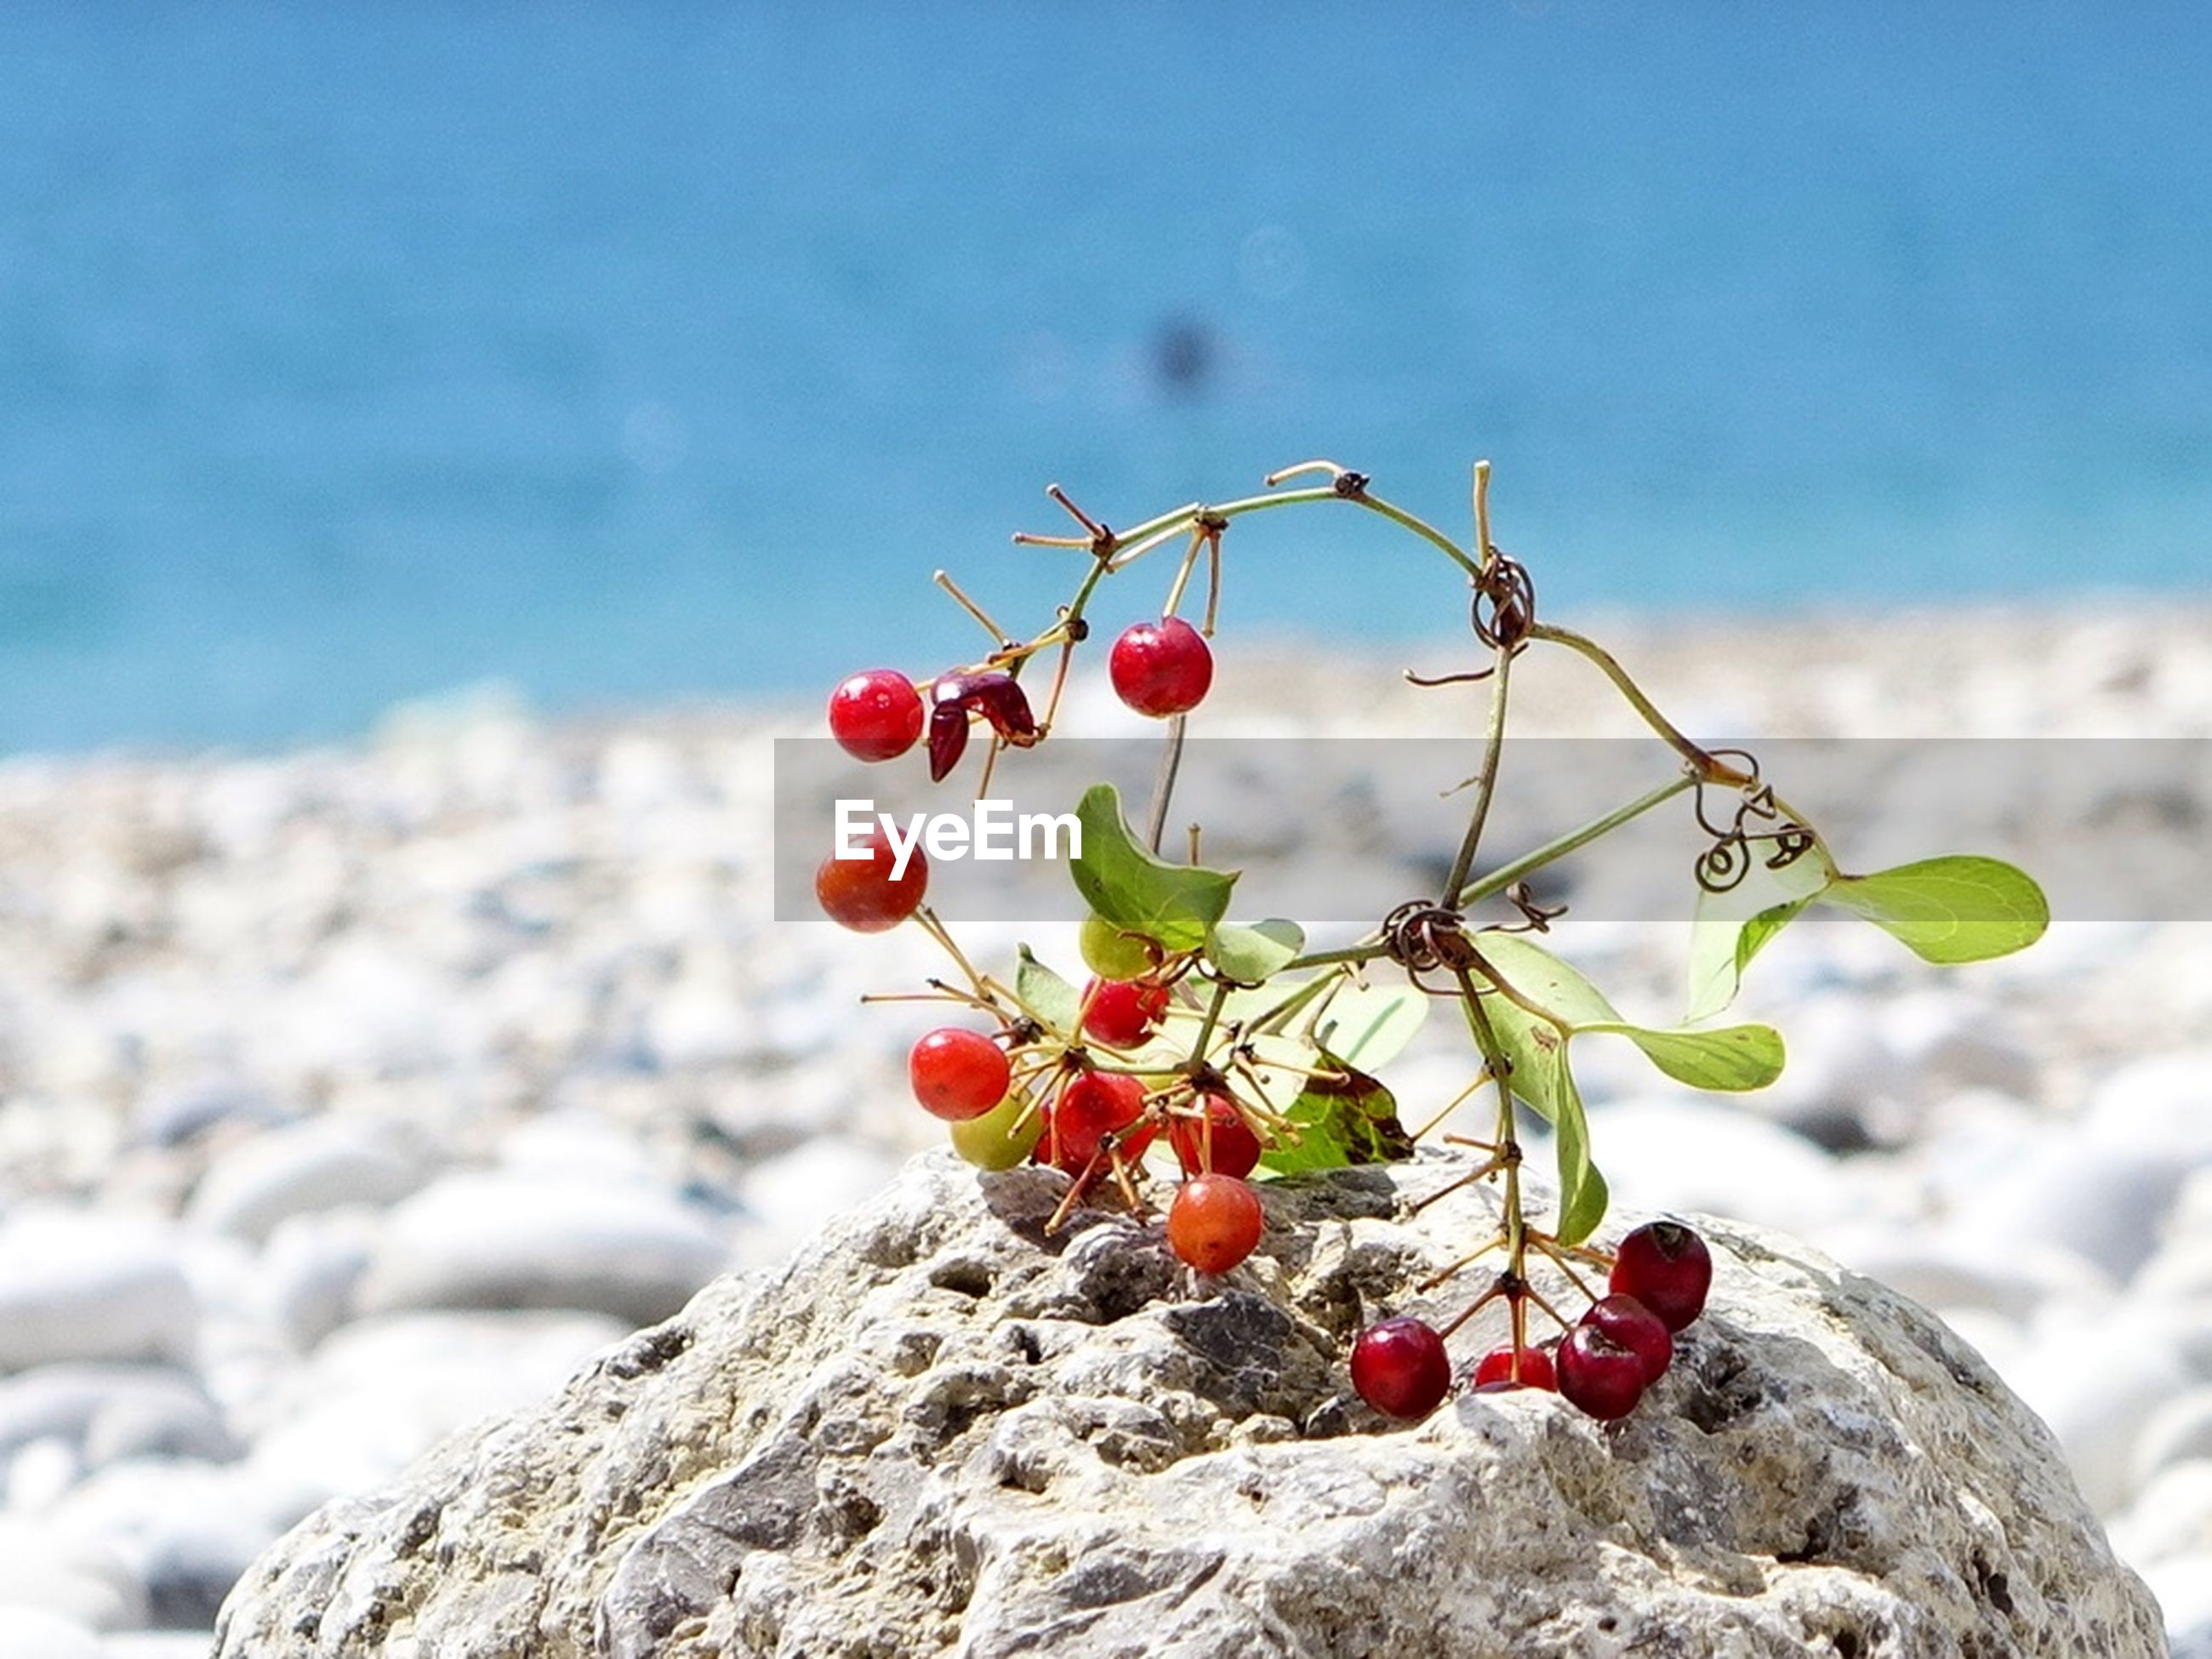 flower, freshness, growth, focus on foreground, nature, beauty in nature, close-up, red, plant, fragility, branch, sky, bud, rock - object, stem, growing, tranquility, botany, day, outdoors